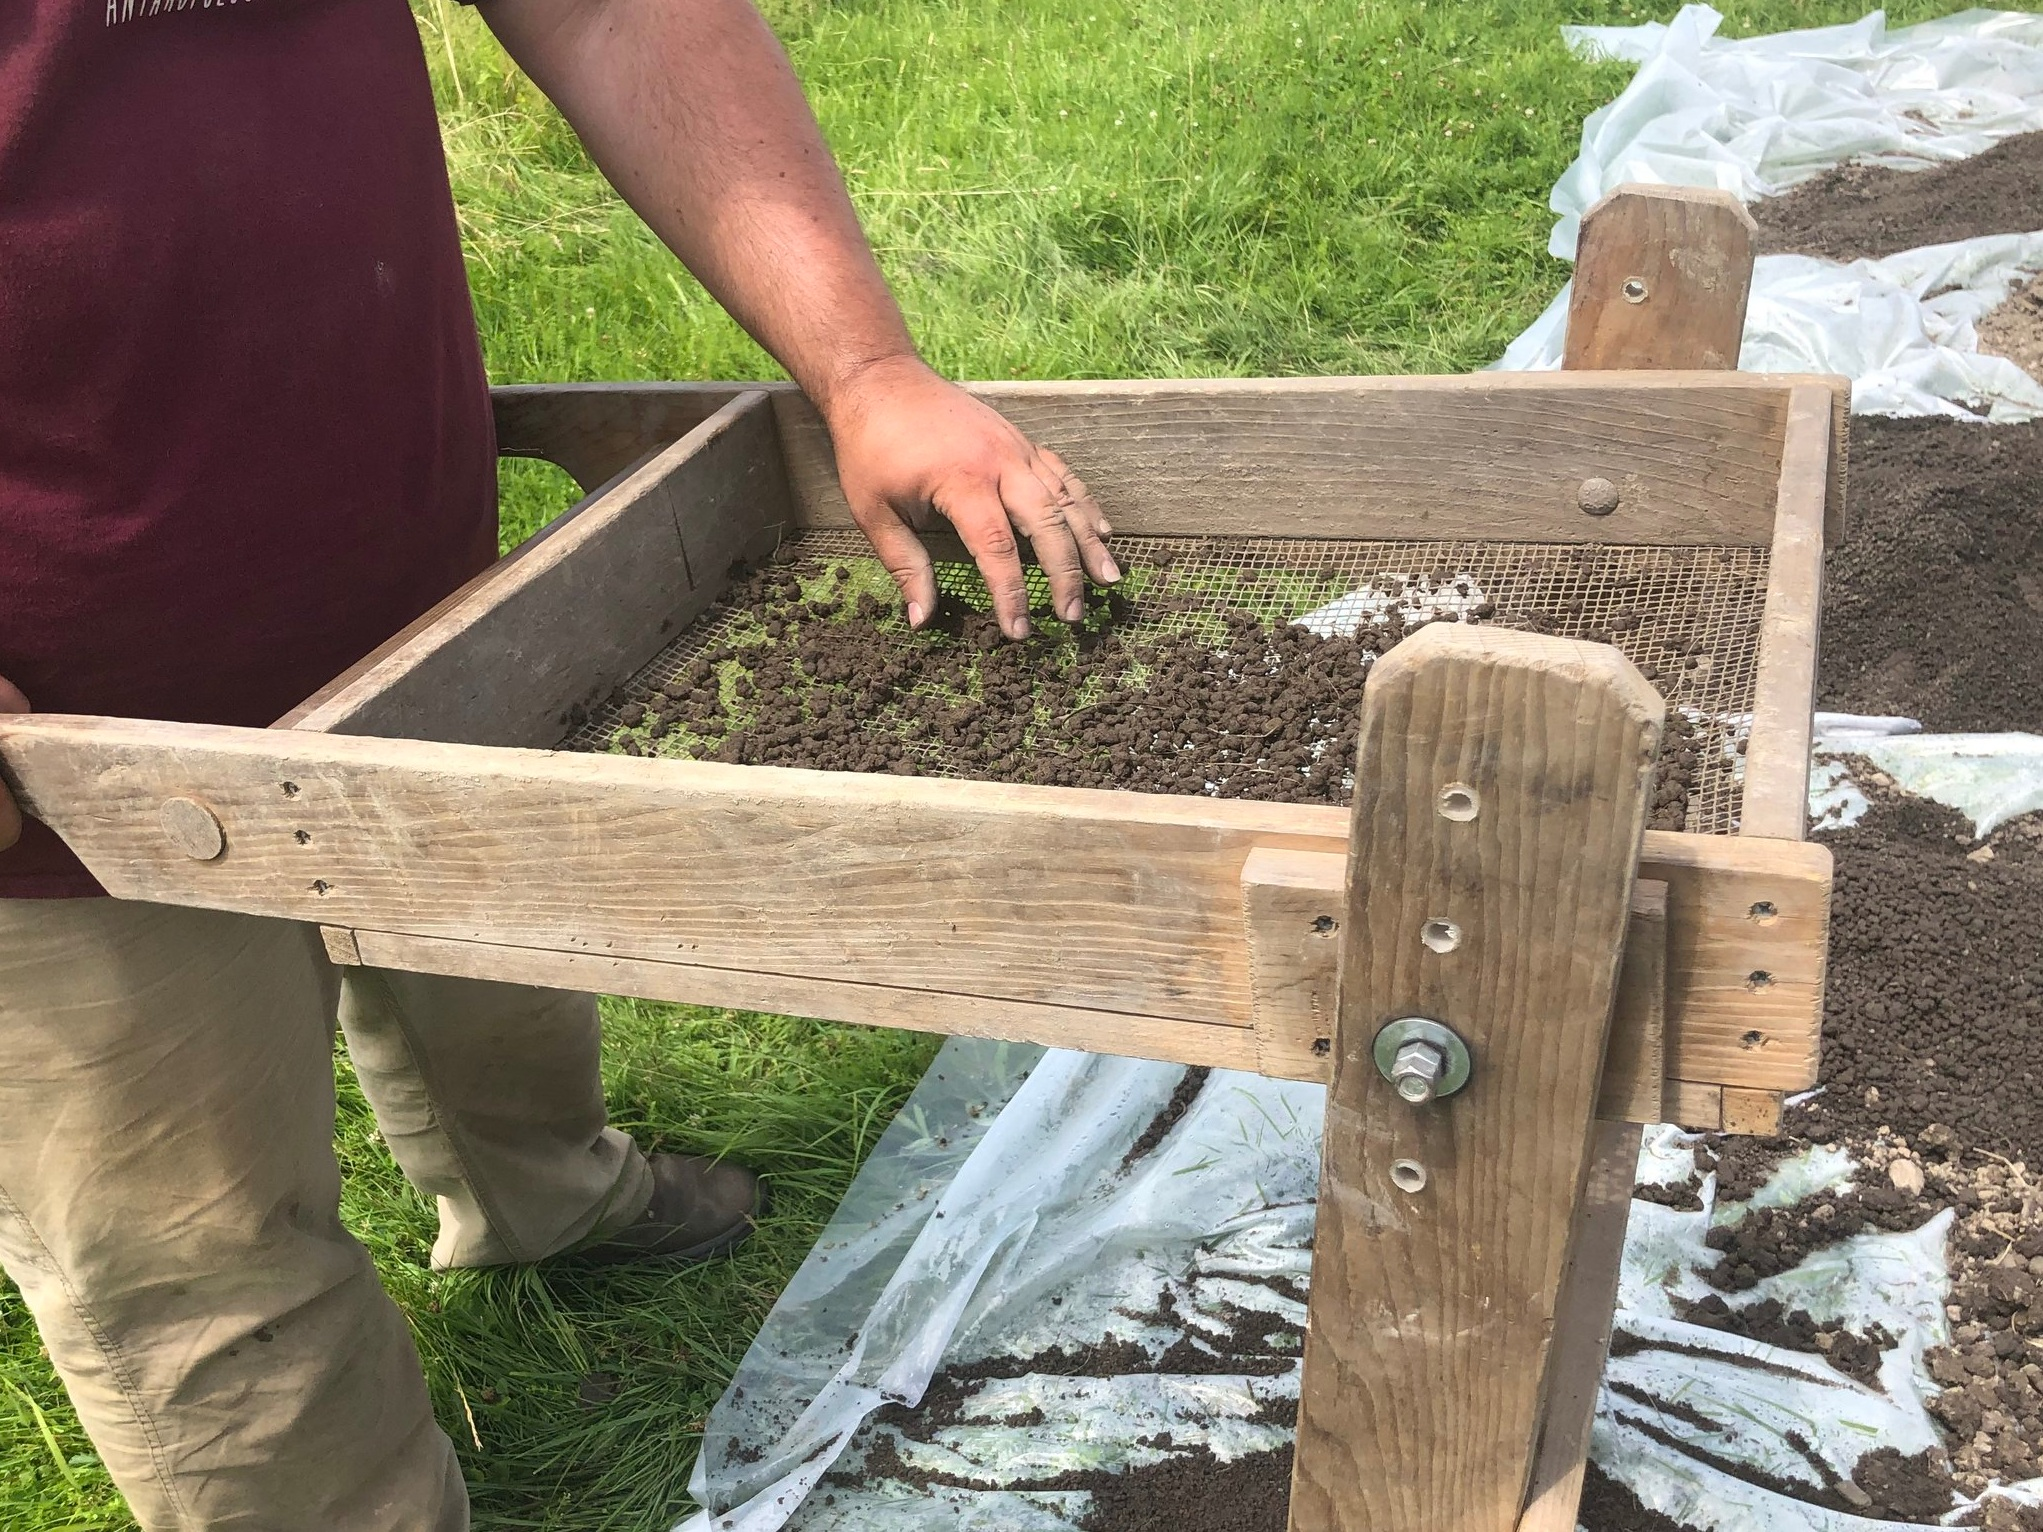 Any soil removed from the dig site must be carefully screened for potential traces of building materials and other artifacts. (Photo credit: Nicole Roché)